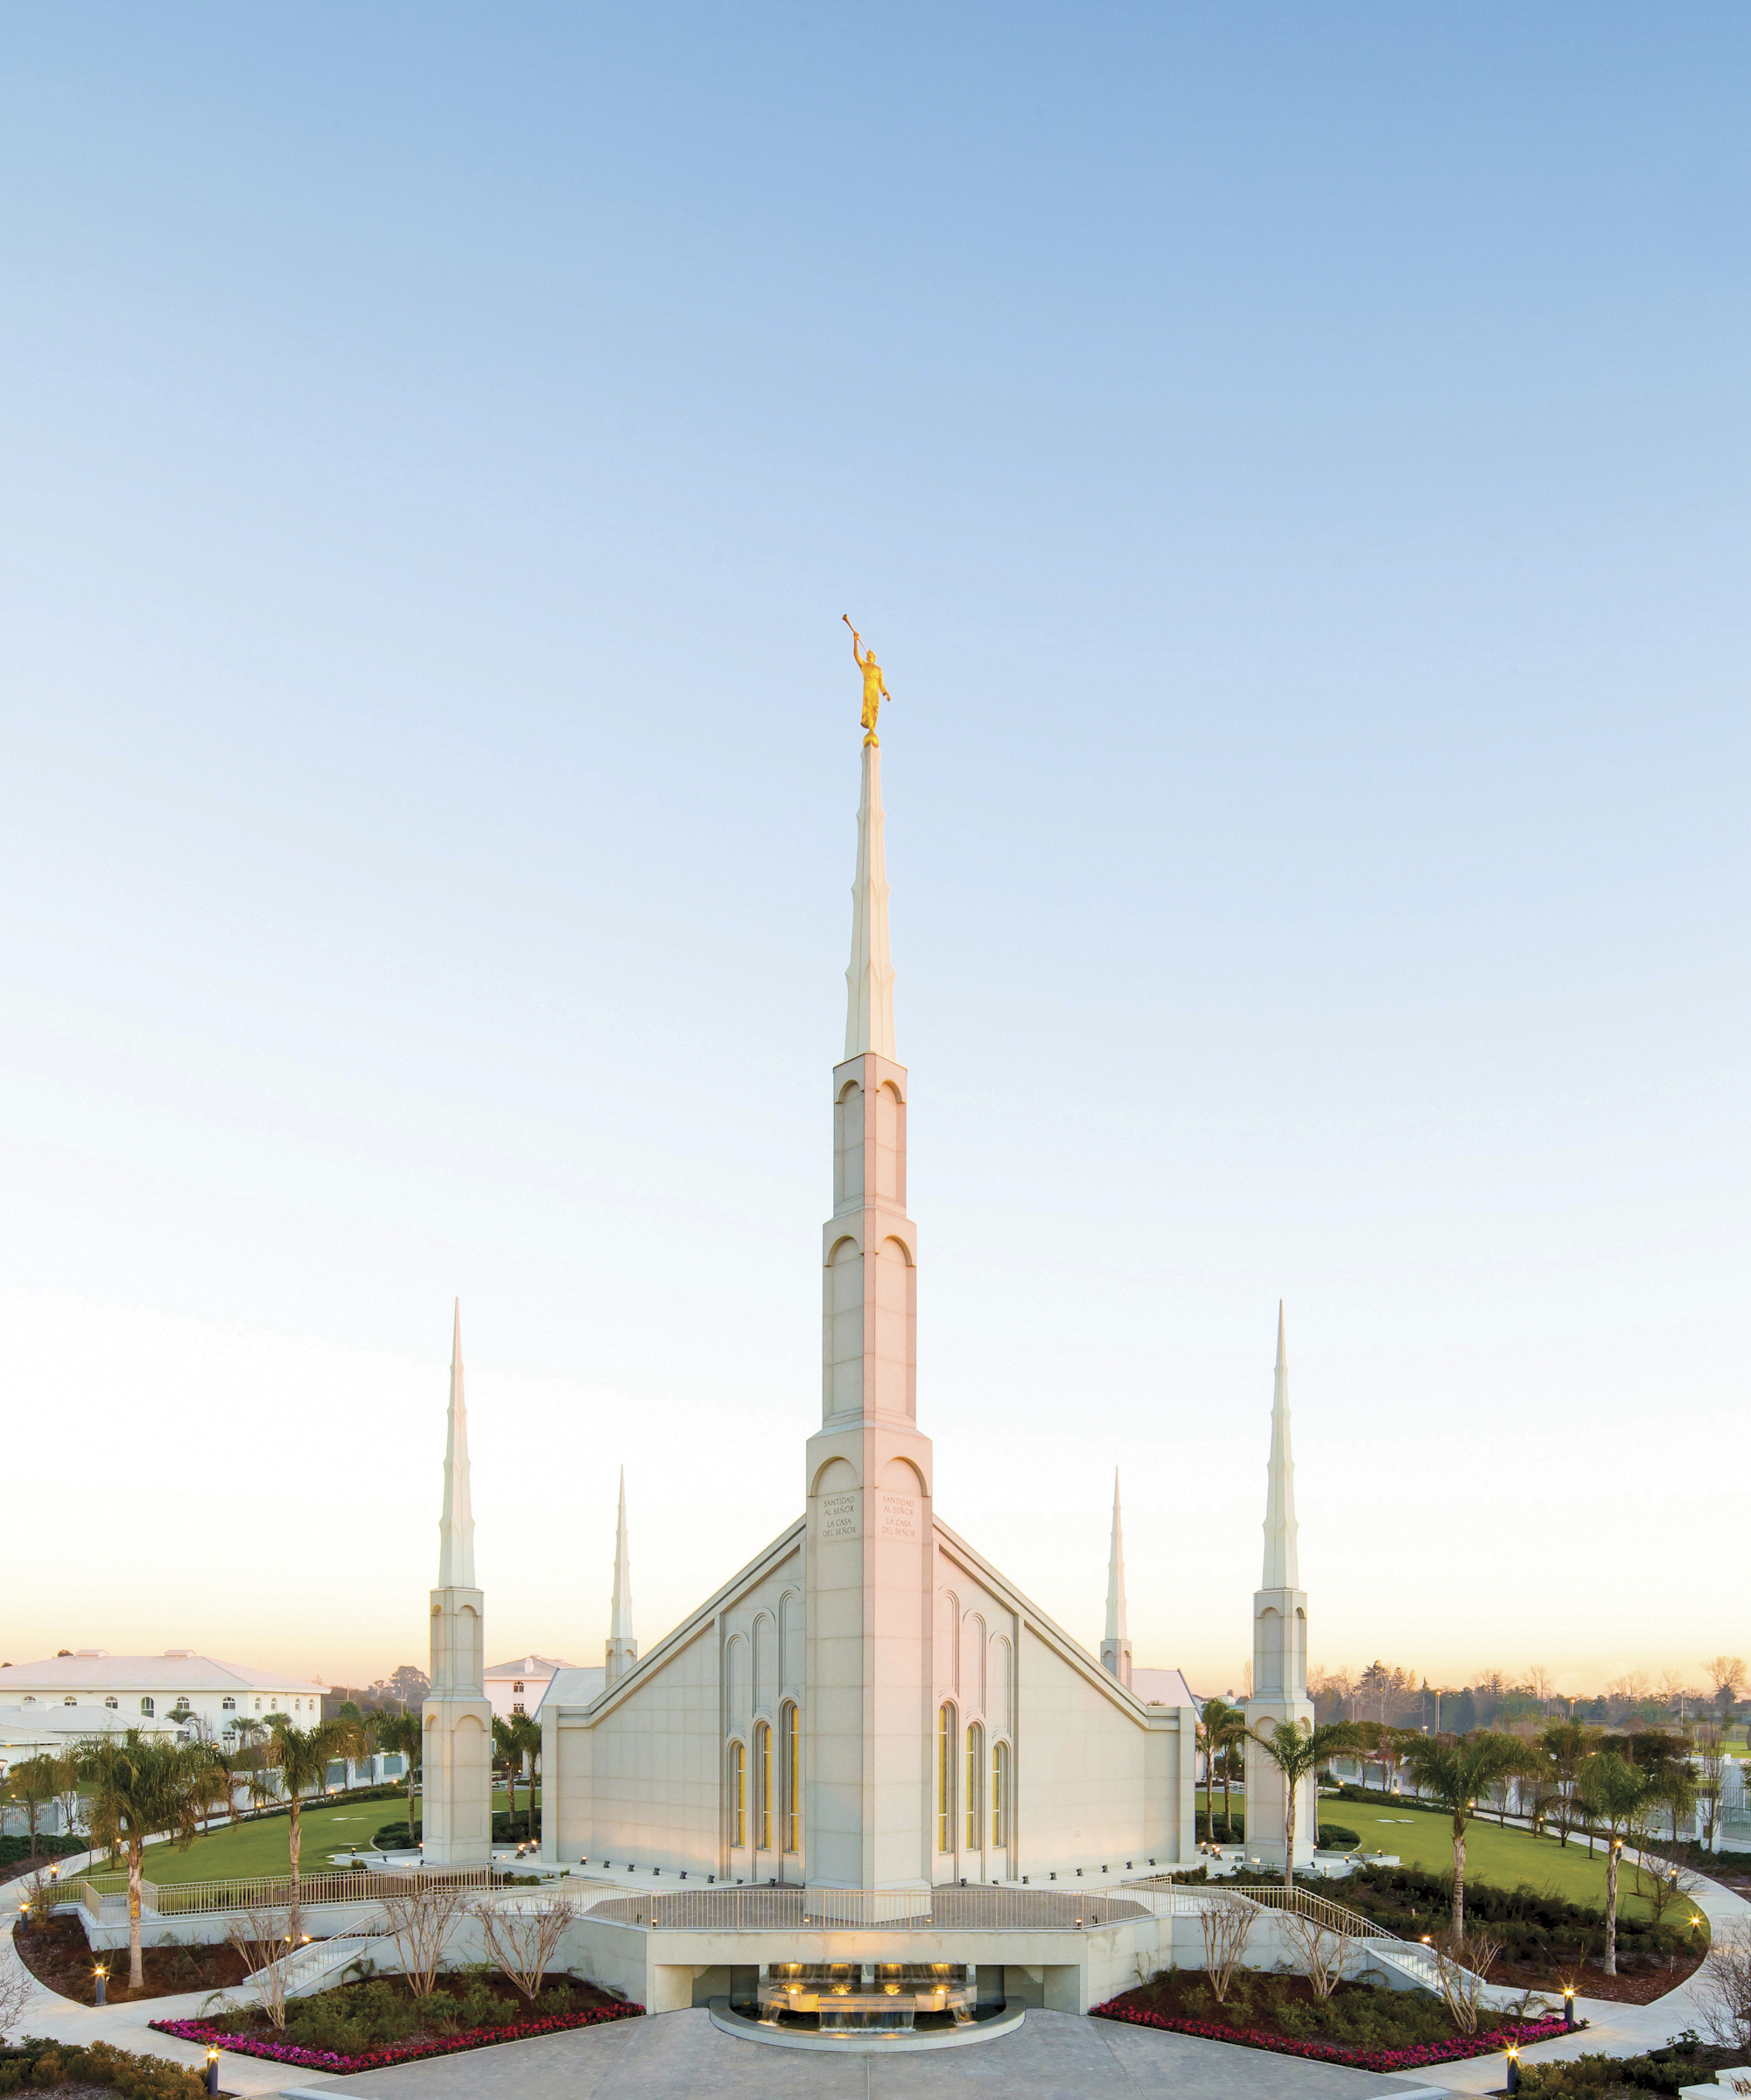 An exterior portrait view of the Buenos Aires Argentina Temple.